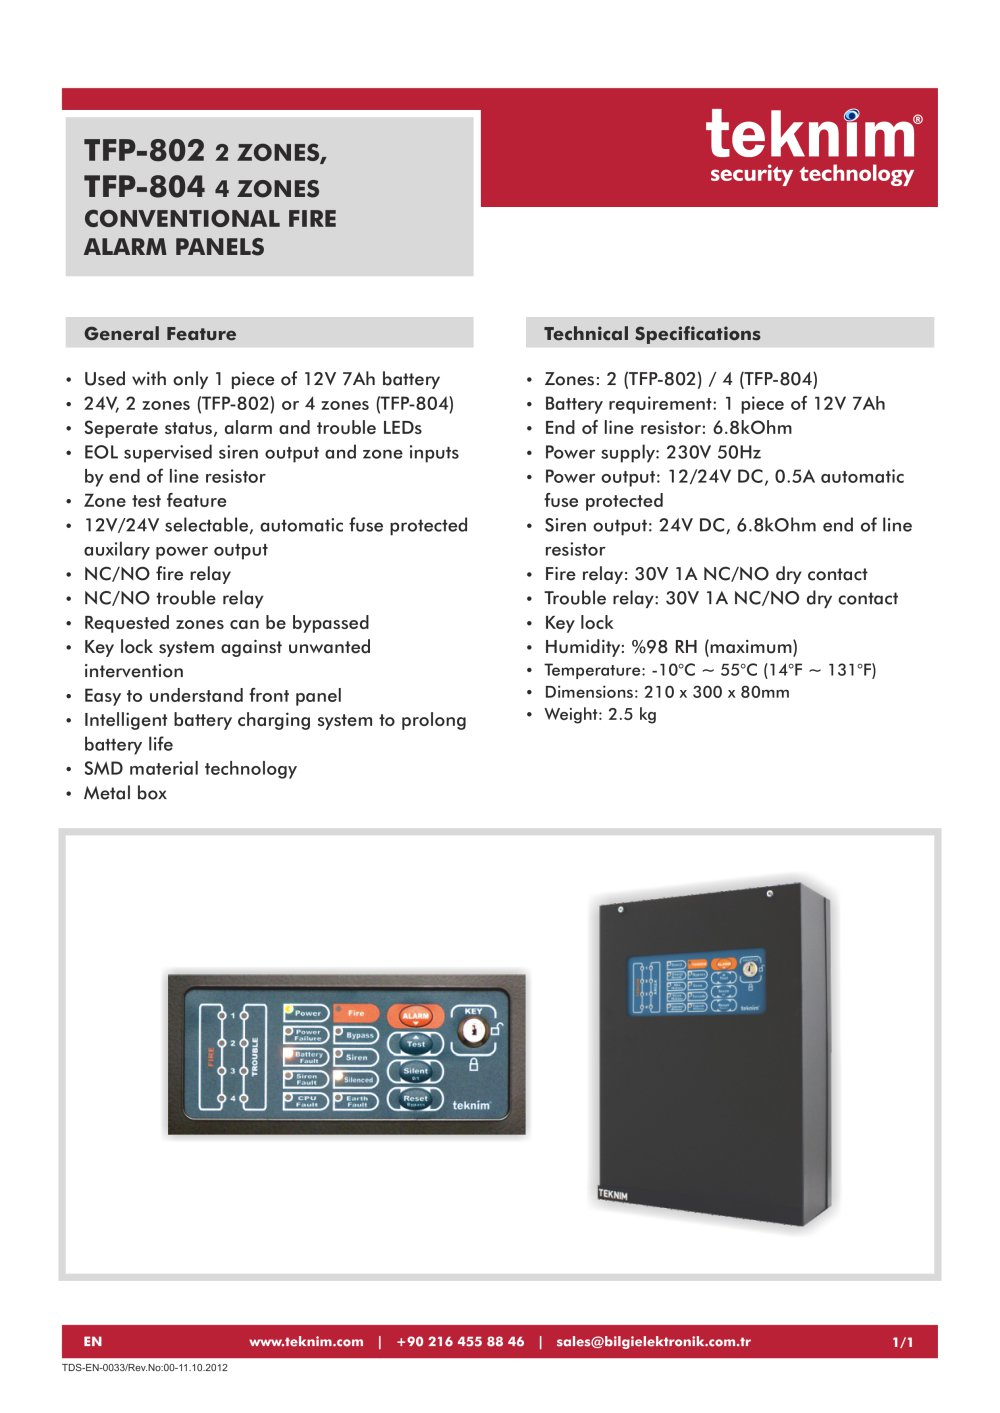 Conventional Fire Alarm Wiring Diagram 38 Images Class A Panel Tfp 802 804 Series Panels 594942 1b Diagrams 498224